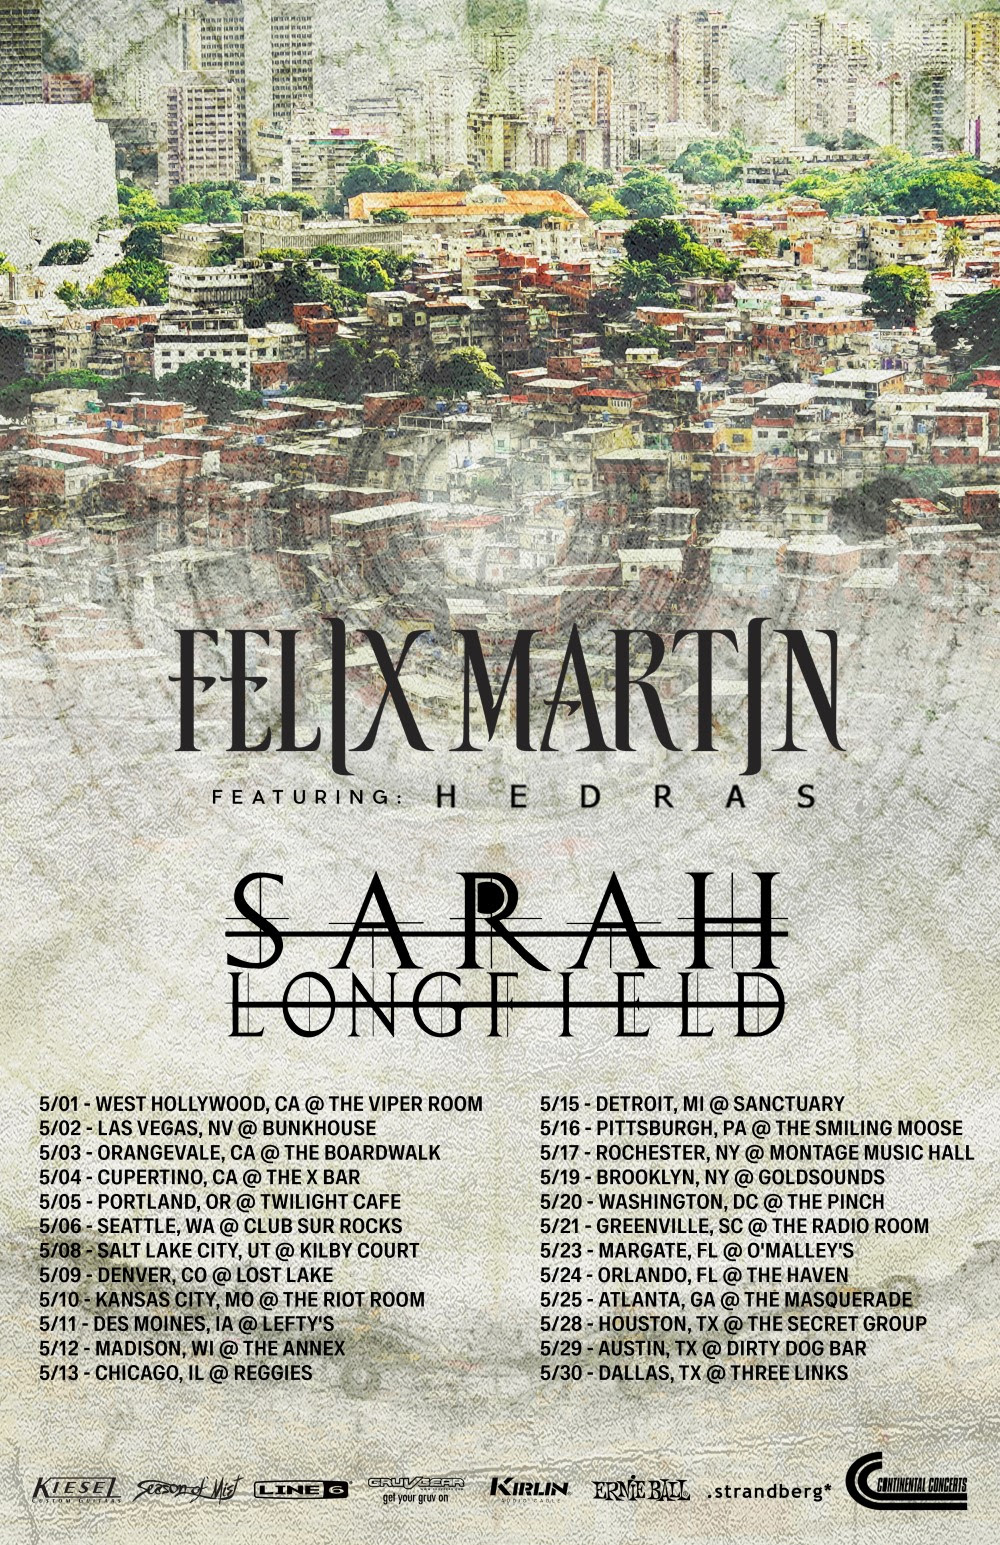 "SARAH LONGFIELD (w/ Felix Martin, Hedras):  05/01: West Hollywood, CA @ Viper Room **Tix TBA** 05/02: Las Vegas, NV @ Bunkhouse **Tix TBA** 05/03: Orangevale, CA @ The Boardwalk ( TICKETS  //  EVENT LINK ) 05/04: Cupertino, CA @ The X Bar ( TICKETS  //  EVENT LINK ) 05/05: Portland, OR @ Twilight Cafe ( TICKETS ) 05/06: Seattle, WA @ Club Sur Rocks ( TICKETS ) 05/08: Salt Lake City, UT @ Kilby Court ( TICKETS  //  EVENT LINK ) 05/09: Denver, CO @ Lost Lake ( TICKETS  //  EVENT LINK ) 05/10: Kansas City, MO @ The Riot Room ( TICKETS  //  EVENT LINK ) 05/11: Des Moines, IA @ Lefty's ( TICKETS  //  EVENT LINK ) 05/12: Madison, WI @ The Annex ( TICKETS  //  EVENT LINK ) 05/13: Chicago, IL @ Reggie's (TICKETS //  EVENT LINK ) 05/15: Detroit, MI @ Sanctuary ( TICKETS  //  EVENT LINK ) 05/16: Pittsburgh, PA @ The Smiling Moose ( TICKETS  //  EVENT LINK ) 05/17: Rochester, NY @ Montage Music Hall ( TICKETS  //  EVENT LINK ) 05/19: Brooklyn, NY @ Goldsounds ( TICKETS  //  EVENT LINK ) 05/20: Washington, DC @ The Pinch ( EVENT LINK ) 05/21: Greenville, SC @ The Radio Room ( TICKETS ) 05/23: Margate, FL @ O'Malley's ( TICKETS  //  EVENT LINK ) 05/24: Orlando, FL @ The Haven ( TICKETS  //  EVENT LINK ) 05/25: Atlanta, GA @ The Masquerade ( TICKETS  //  EVENT LINK ) 05/28: Houston, TX @ The Secret Group ( TICKETS  //  EVENT LINK ) 05/29: Austin, TX @ Dirty Dog Bar ( TICKETS  //  EVENT LINK ) 05/30: Dallas, TX @ Three Links ( TICKETS )   LONGFIELD  will be touring in support of her ambitious new album, 'Disparity,' which was released on November 30, 2018 via Season of Mist, making it the guitarist's debut to the label. 'Disparity' sees  LONGFIELD  raise her virtuoso playing and unique tapping technique (adapted from piano-playing fundamentals) to astounding new heights. Her music defies all genre constriction while artfully melding complex melodies with incredible levels of guitar shred.  LONGFIELD  is in the vanguard of young players leading the evolution of the modern guitarist, with 'Disparity' being a fascinating and mesmerizing glimpse inside the storm. Listen to 'Disparity' in full  HERE .   LONGFIELD  got her start on YouTube, cultivating a growing audience of over 215,000 subscribers.  Ultimate Guitar recently named her  one of the Top 25 YouTube Guitarists (#13).  Additionally, the 8-string extraordinaire recently debuted her first ever signature guitar via Strandberg at the 2019 NAMM Show. Details on her signature axe can be found  HERE . Photos can be found below.  After years of playing the piano and the violin, multi-instrumentalist Sarah Longfield found her true musical calling when she purchased her first 7-string guitar at the age of 13. Her first EP's 'Zeal' (2011) and 'Par Avion' (2012) received high praise from critics and fans alike.  In 2012, Longfield formed the band THE FINE CONTSTANT. In just a few years, the band released two full length albums, and toured the world supporting MARTY FRIEDMAN, ANGEL VIVALDI, POLYPHIA, and performing at festivals such as UK Tech Fest, Euroblast Fest, SXSW, and more. Her band has been hailed as "" an exceptional breed of top-notch instrumental metal""  (No Clean Singing), featuring  ""experimental know-how with a more finely-tuned approach to songwriting that bleeds together passages of spacey electronics and intertwining guitar melodies. "" (Heavy Blog is Heavy)  Longfield first gained notoriety from her prolific playthrough and guitar demonstrations on her   YouTube channel  . Since then, Longfield has uploaded a collection of over 100 videos, featuring   playthroughs  ,   cover songs  ,   solo material  , vlogs, and much more. To date, Longfield's channel has over 215,000 subscribers, and amassed millions upon millions of views."